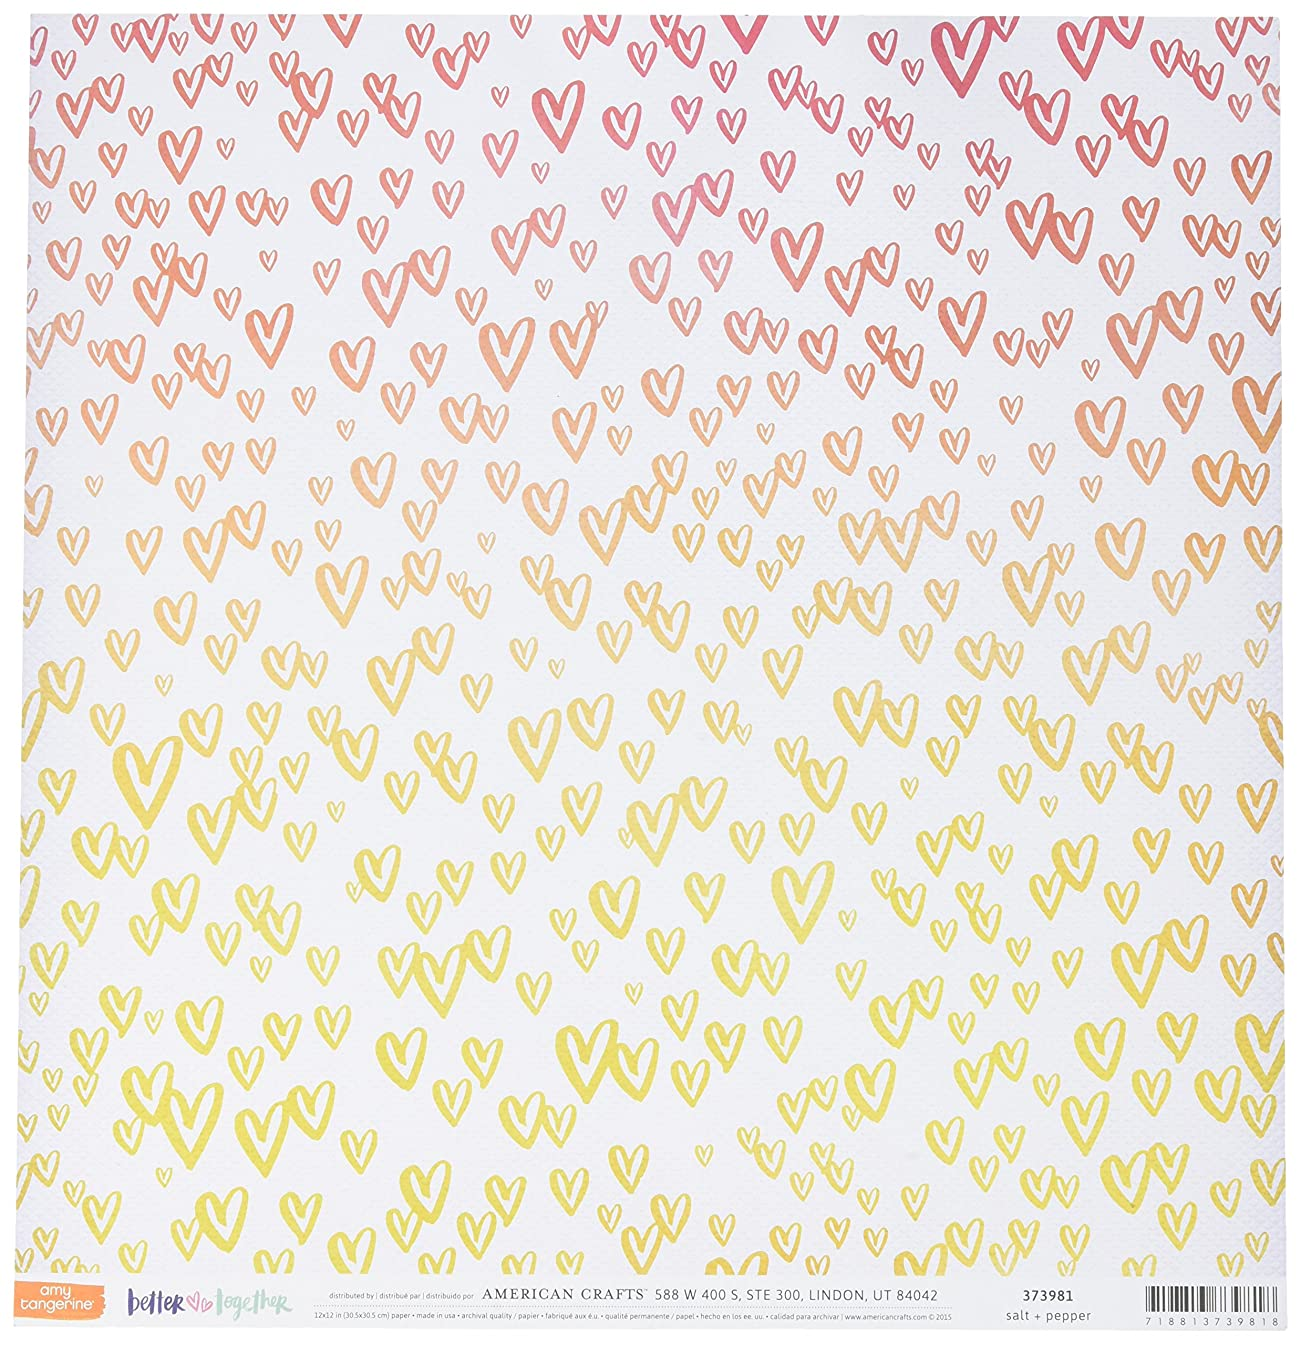 American Crafts 373981 Amy Tan Better Together Double Sided Cardstock (25 Sheets Per Pack), 12